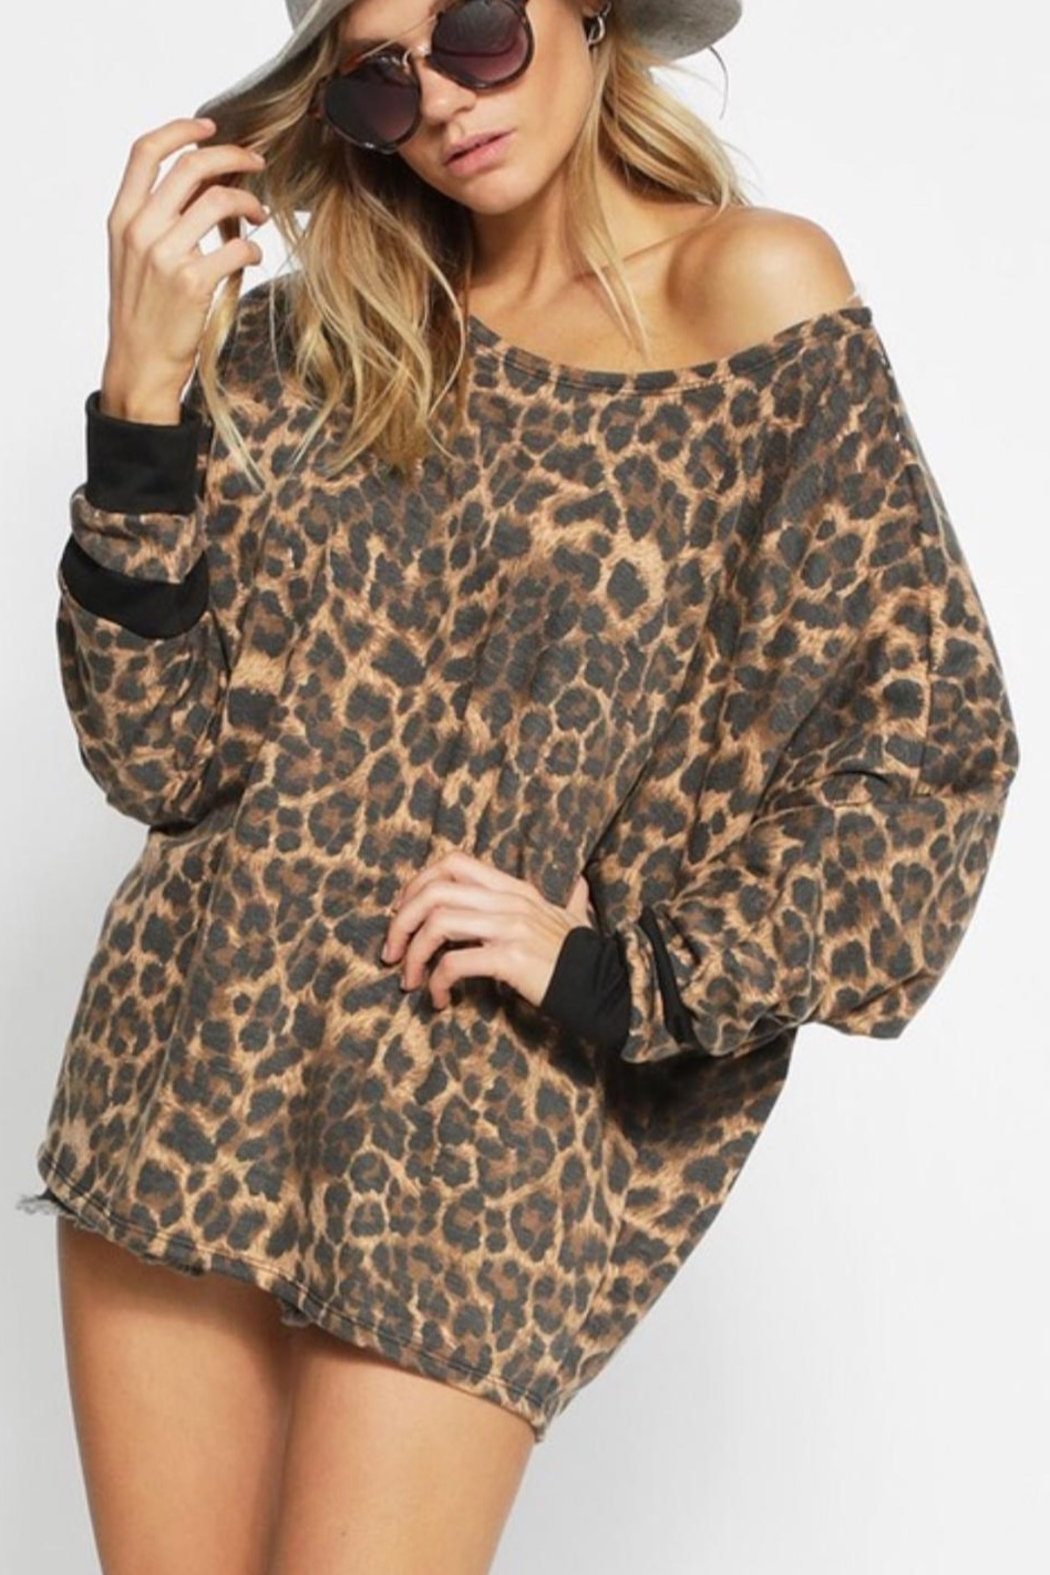 Bibi LEOPARD FRENCH TERRY WIDE NECK TOP - Main Image